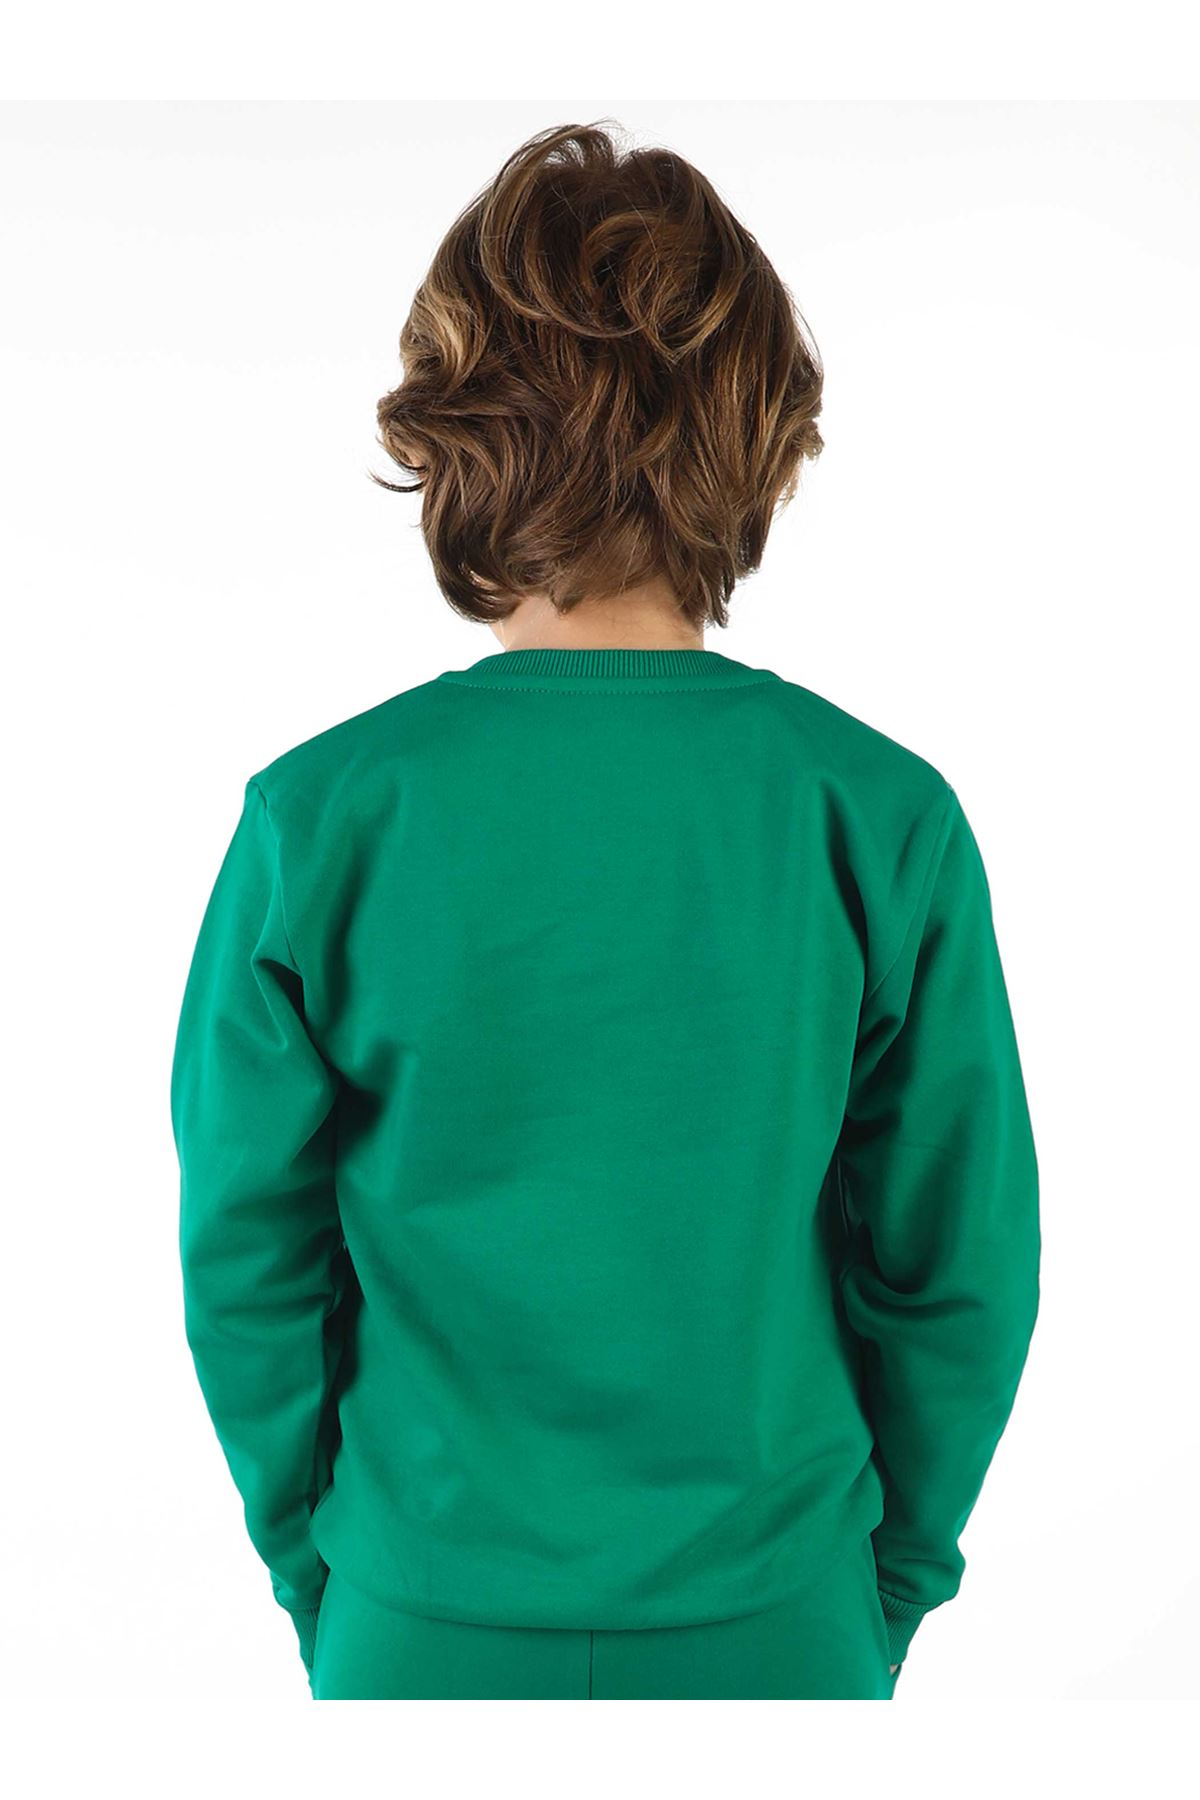 Green Seasonal Male Child Sweatshirt